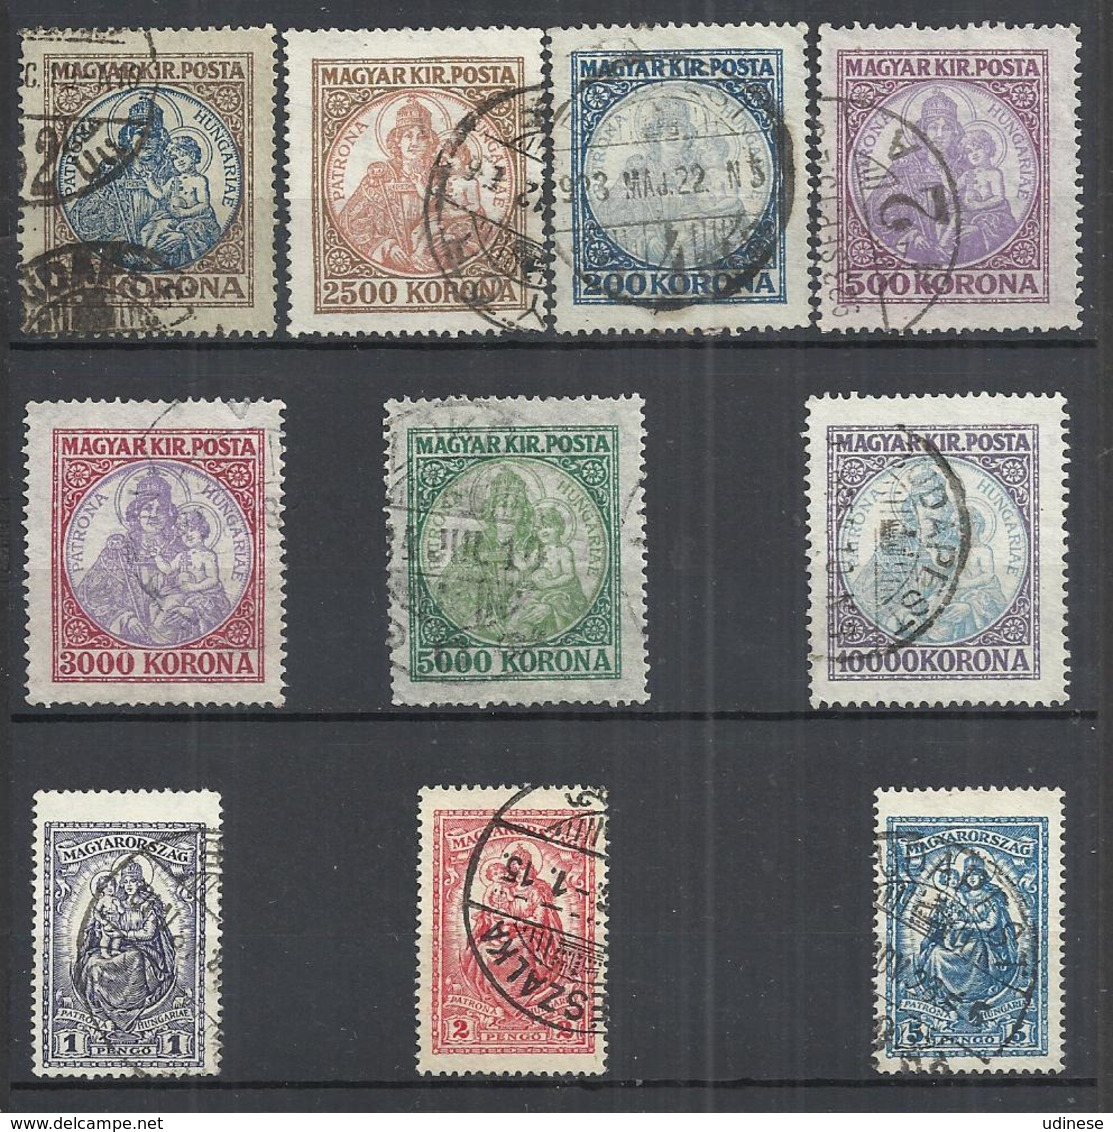 TEN AT A TIME - HUNGARY 1921-1925 - MADONNA AND CHILD - LOT OF 10 DIFFERENT - USED OBLITERE GESTEMPELT USADO - Oblitérés